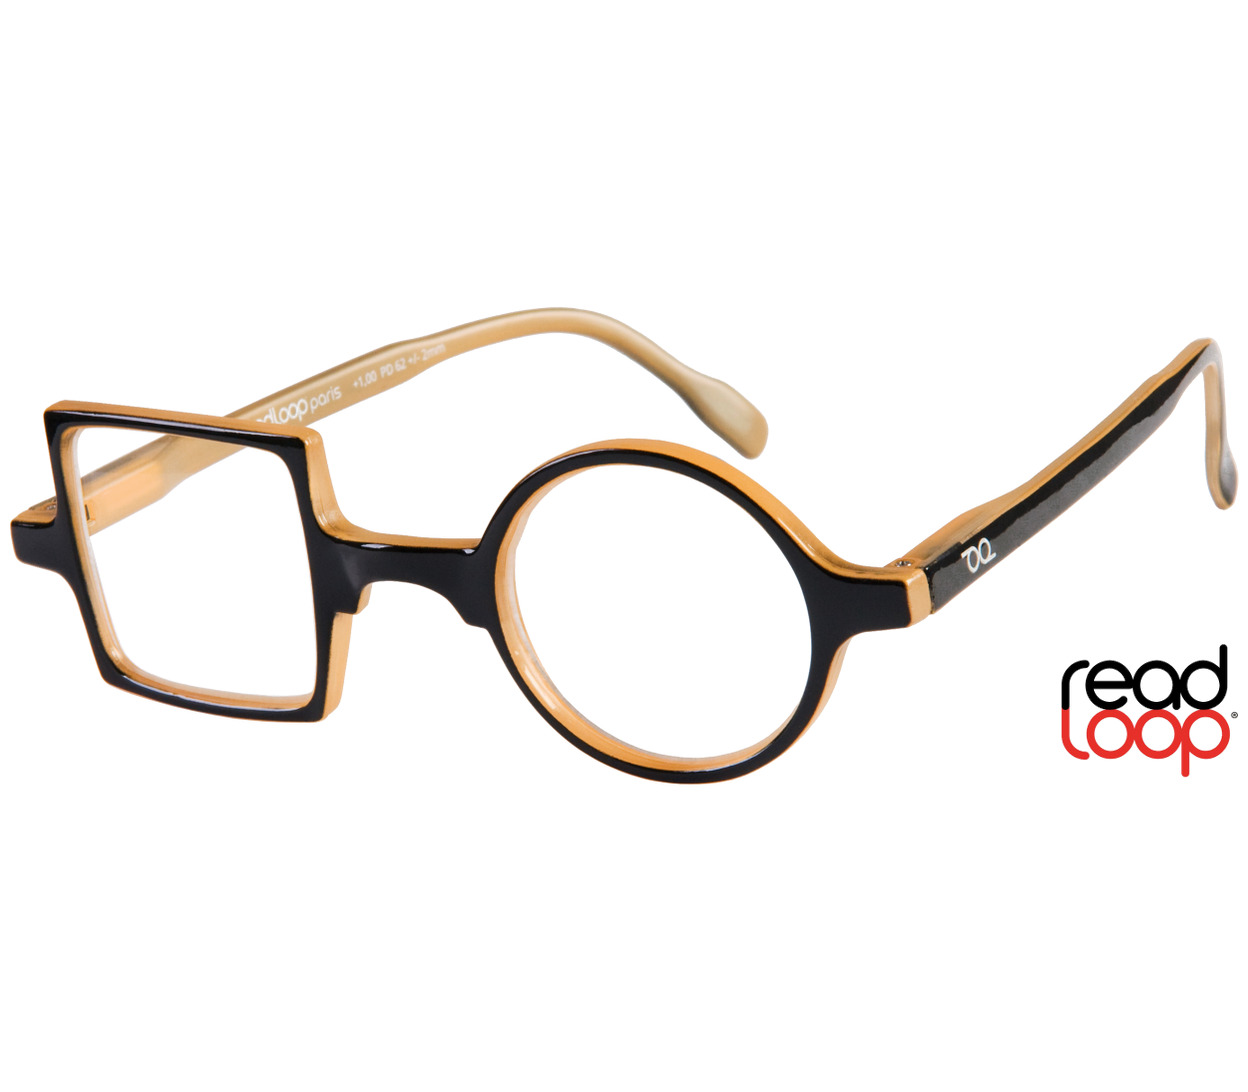 Main Image (Angle) - Patchwork (Black) Retro Reading Glasses